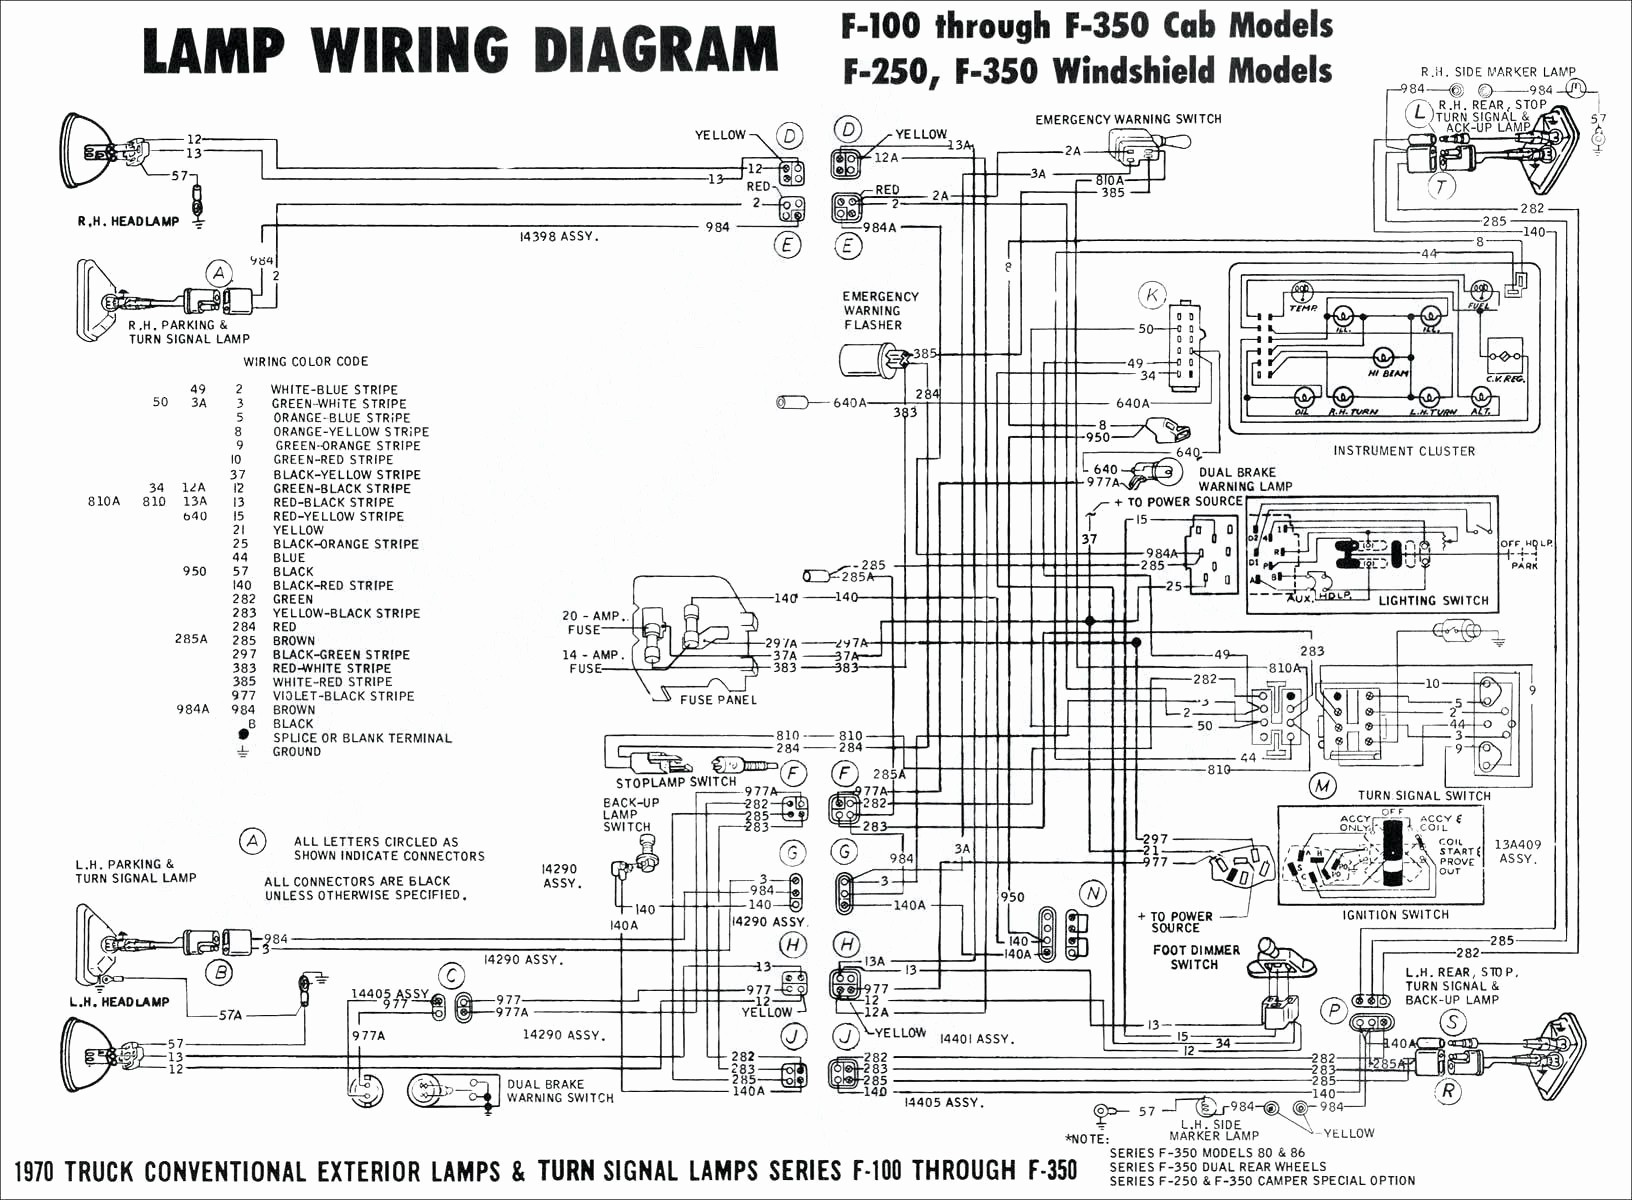 [DIAGRAM] 2002 S10 Brake Light Wiring Diagram FULL Version